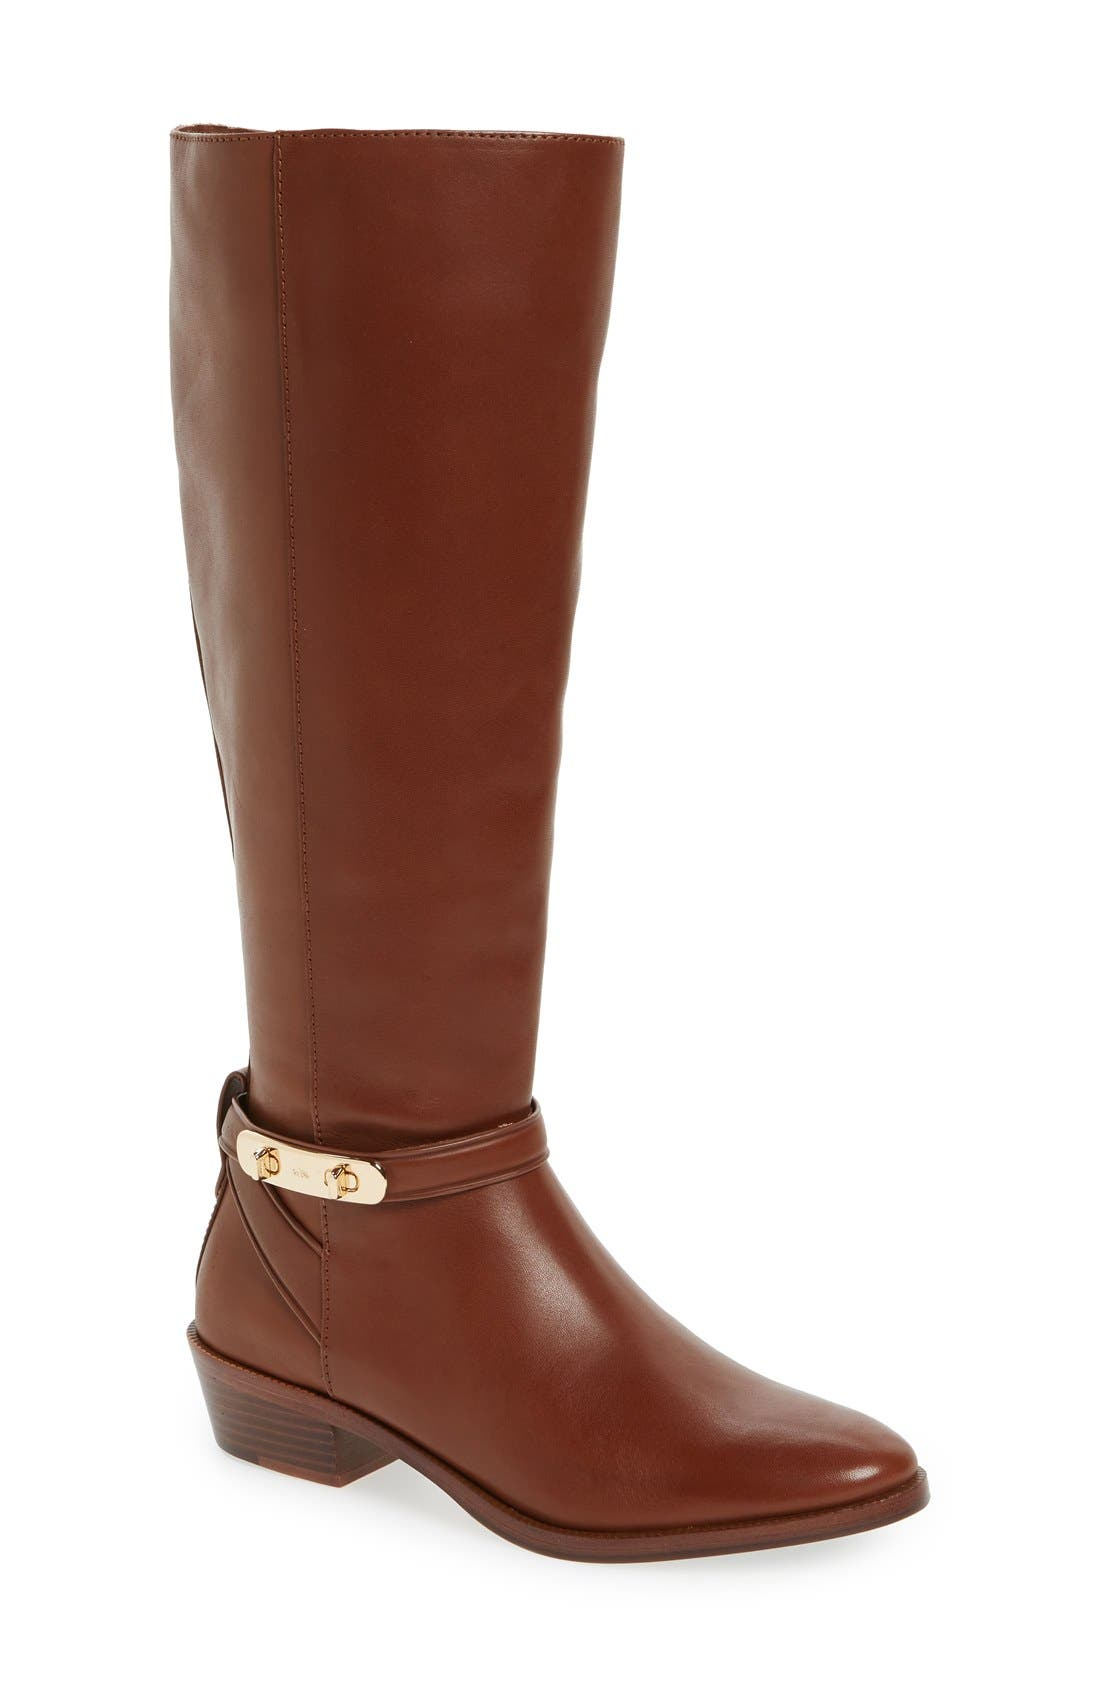 Main Image - COACH 'Caroline' Tall Boot (Women)